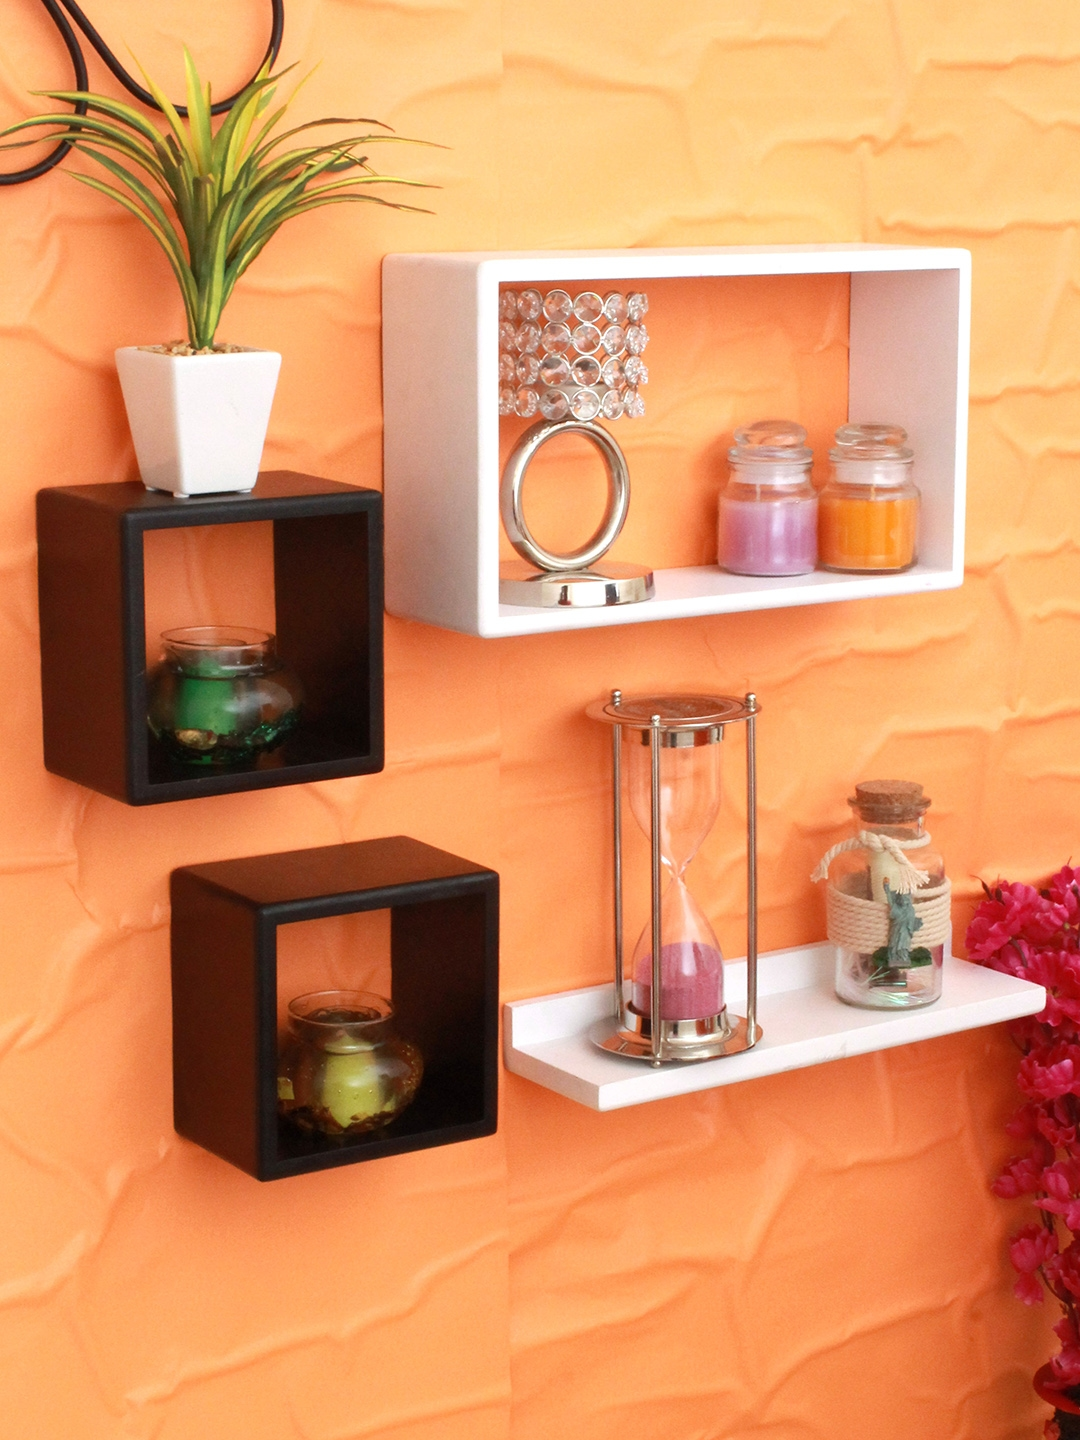 Home Sparkle Set of 4 Wall Shelves